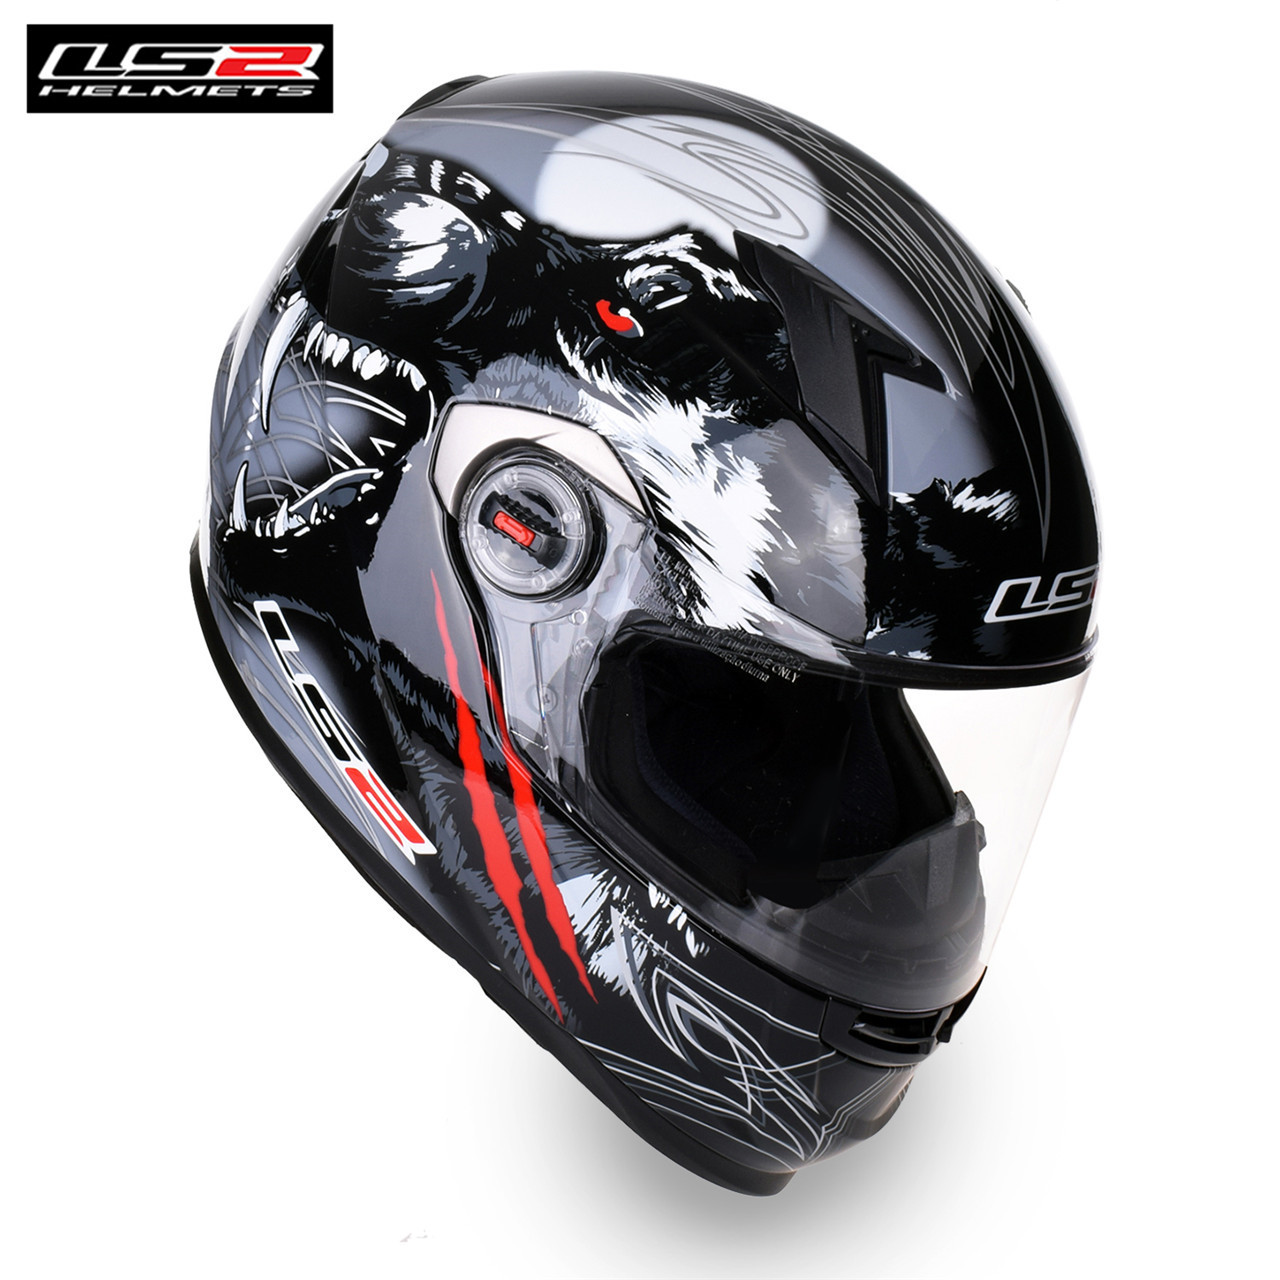 LS2 Hot Sales Motorcycle Helmet Full Face Racing Kask Casque moto Cascos Capacete Helmets Motor Bike ls2 global store ls2 ff353 full face motorcycle helmet abs safe structure casque moto capacete ls2 rapid street racing helmets